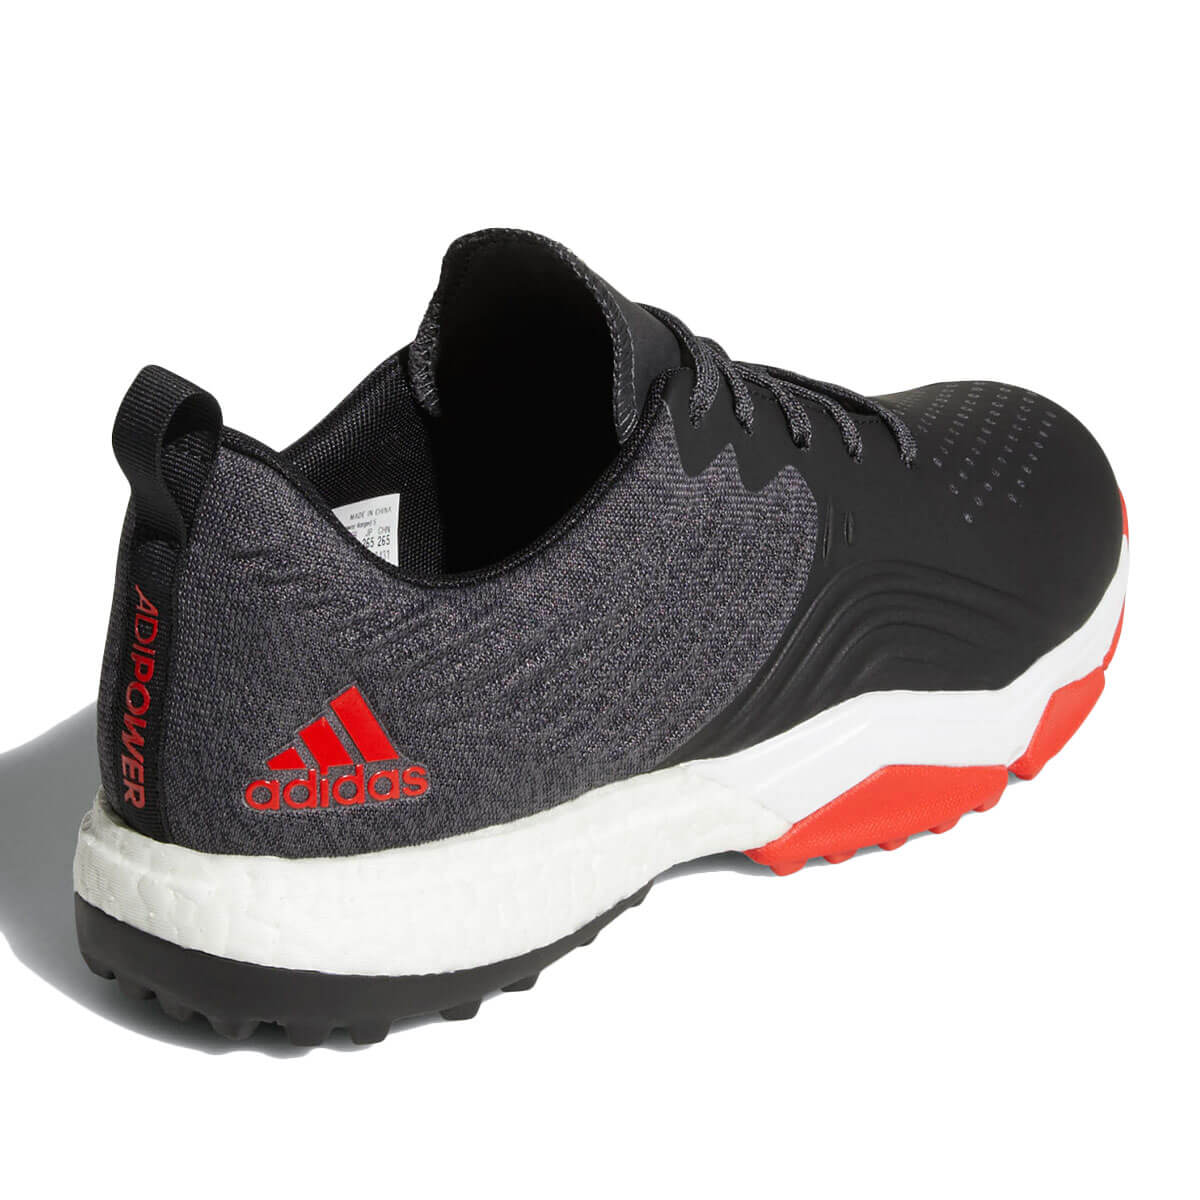 adidas-Golf-Mens-Adipower-Spikeless-BOOST-Stretch-Golf-Shoes-27-OFF-RRP thumbnail 11